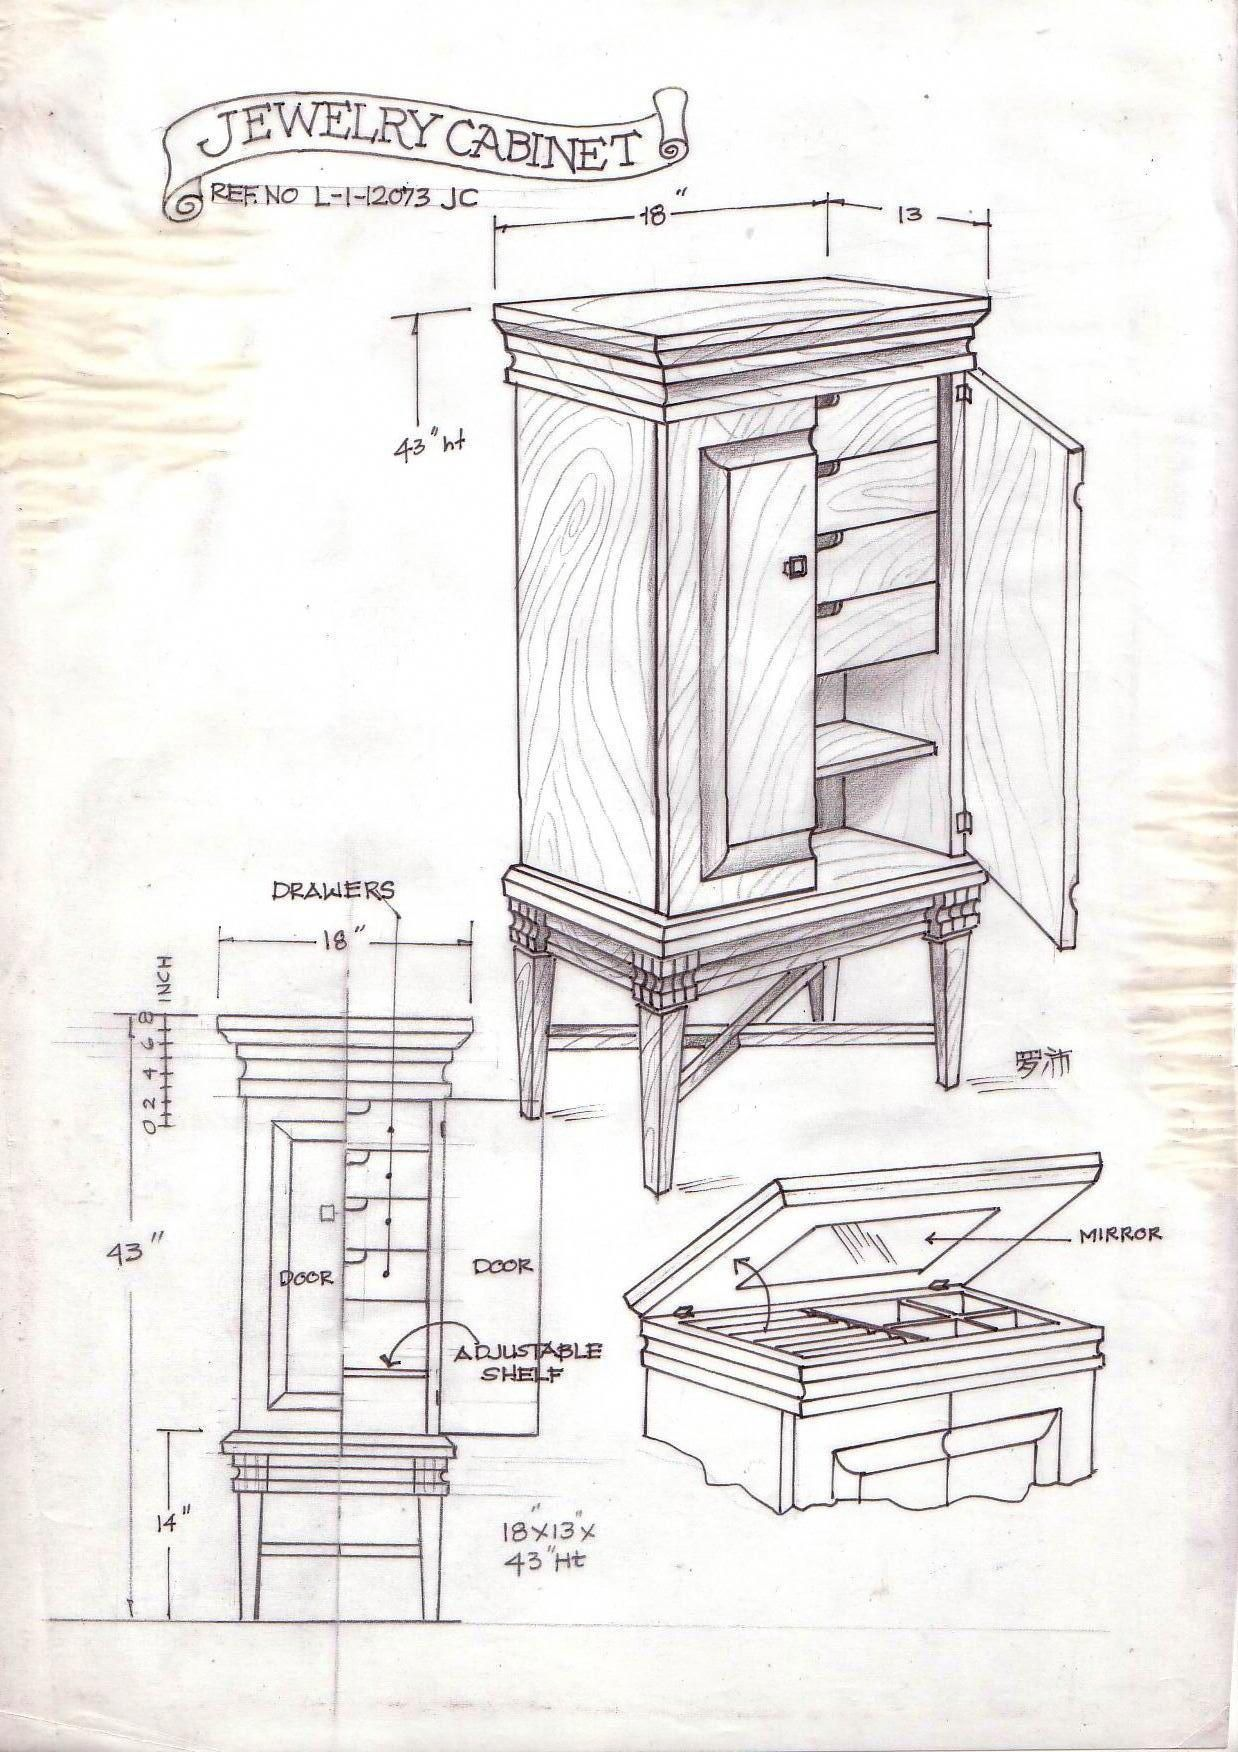 Freehand Drawing Of Furniture Designs By Lope Inario At Coroflot Com Drawingfurnitureplans Woodplansdrawing Miniaturen Planer Bilder